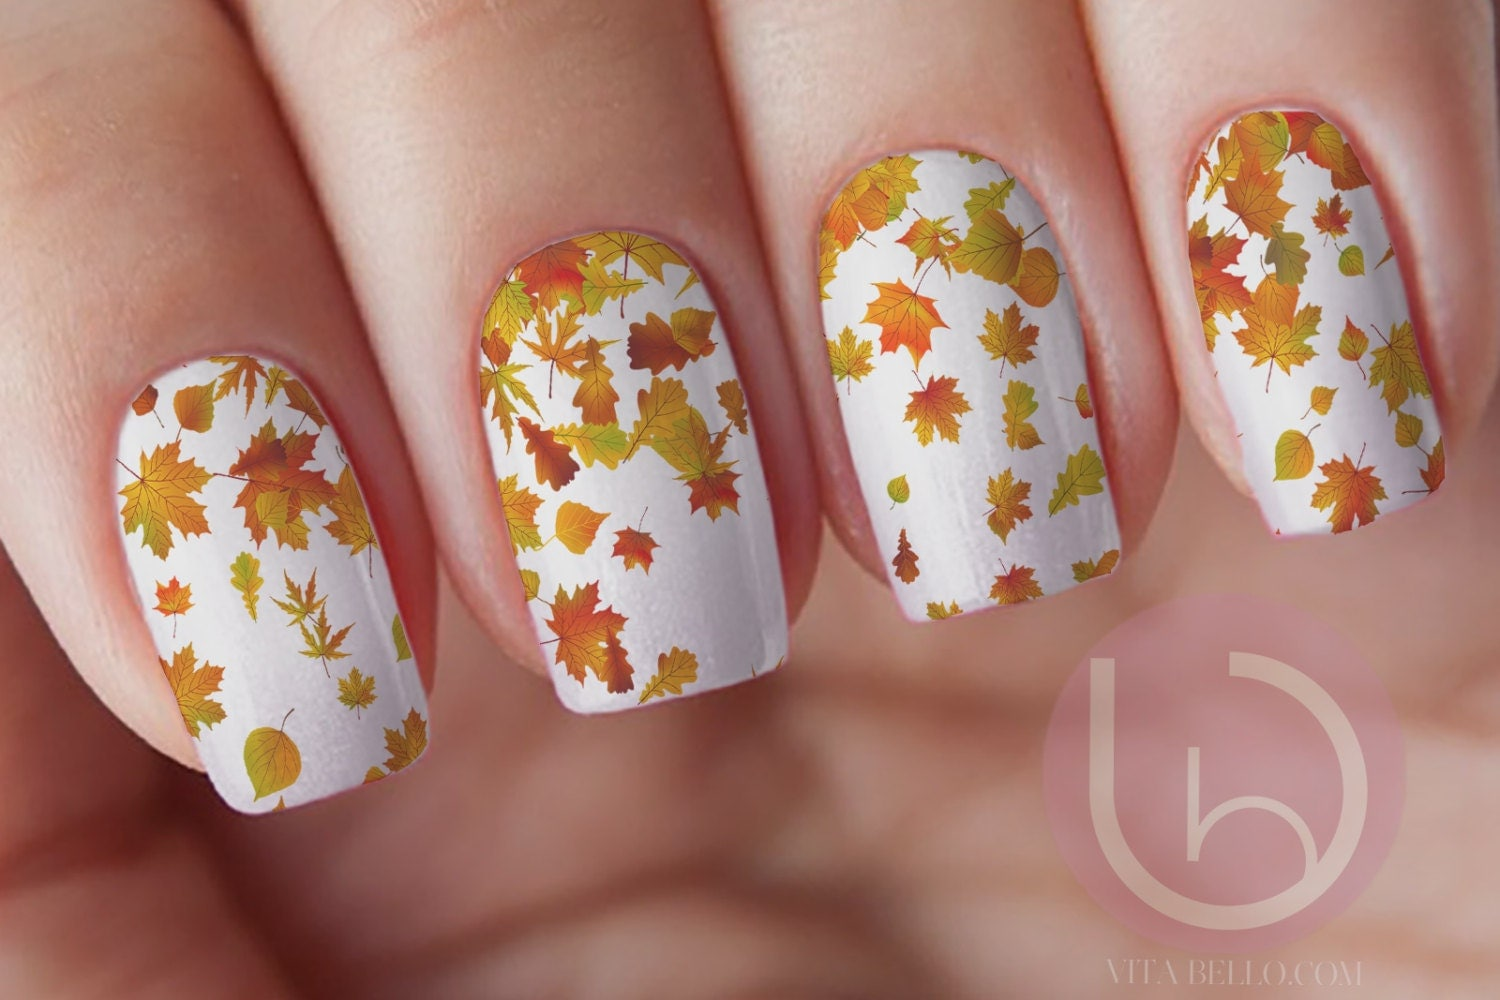 Autumn Leaves Waterslide Nail Decal, Nail Design, Nails, Press On ...